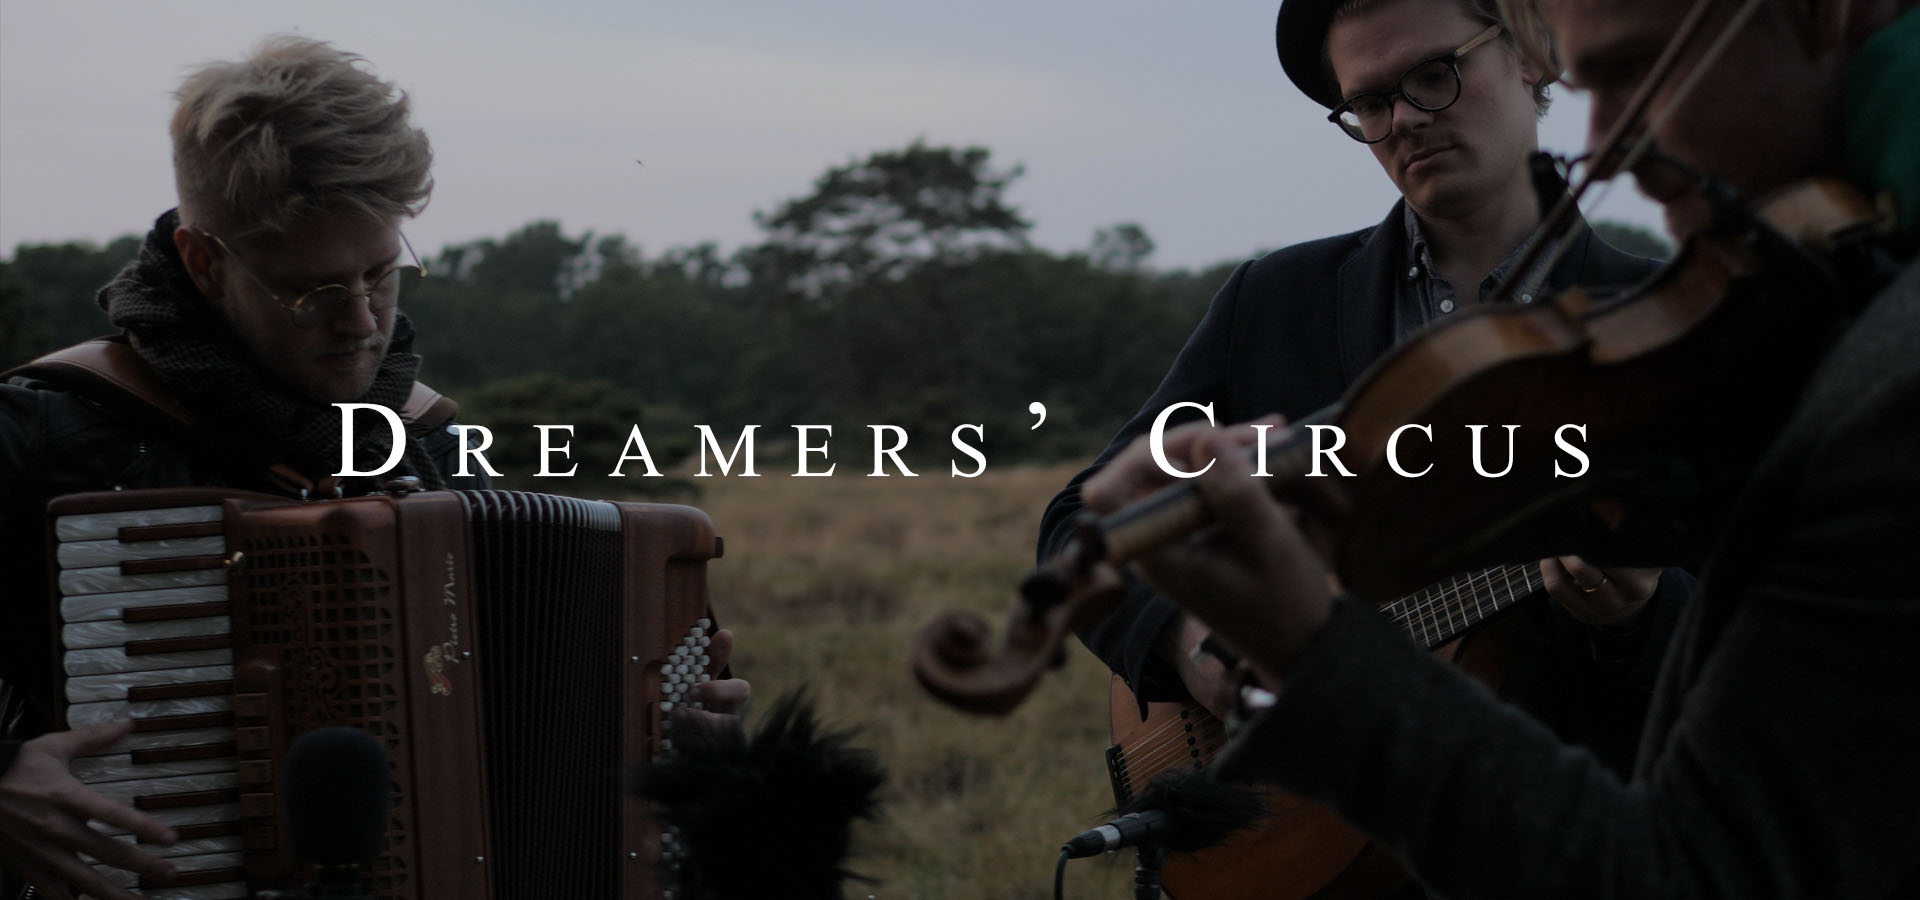 "<a href=""http://www.moensessions.com/2017/10/24/dreamers-circus/"">.</a>"